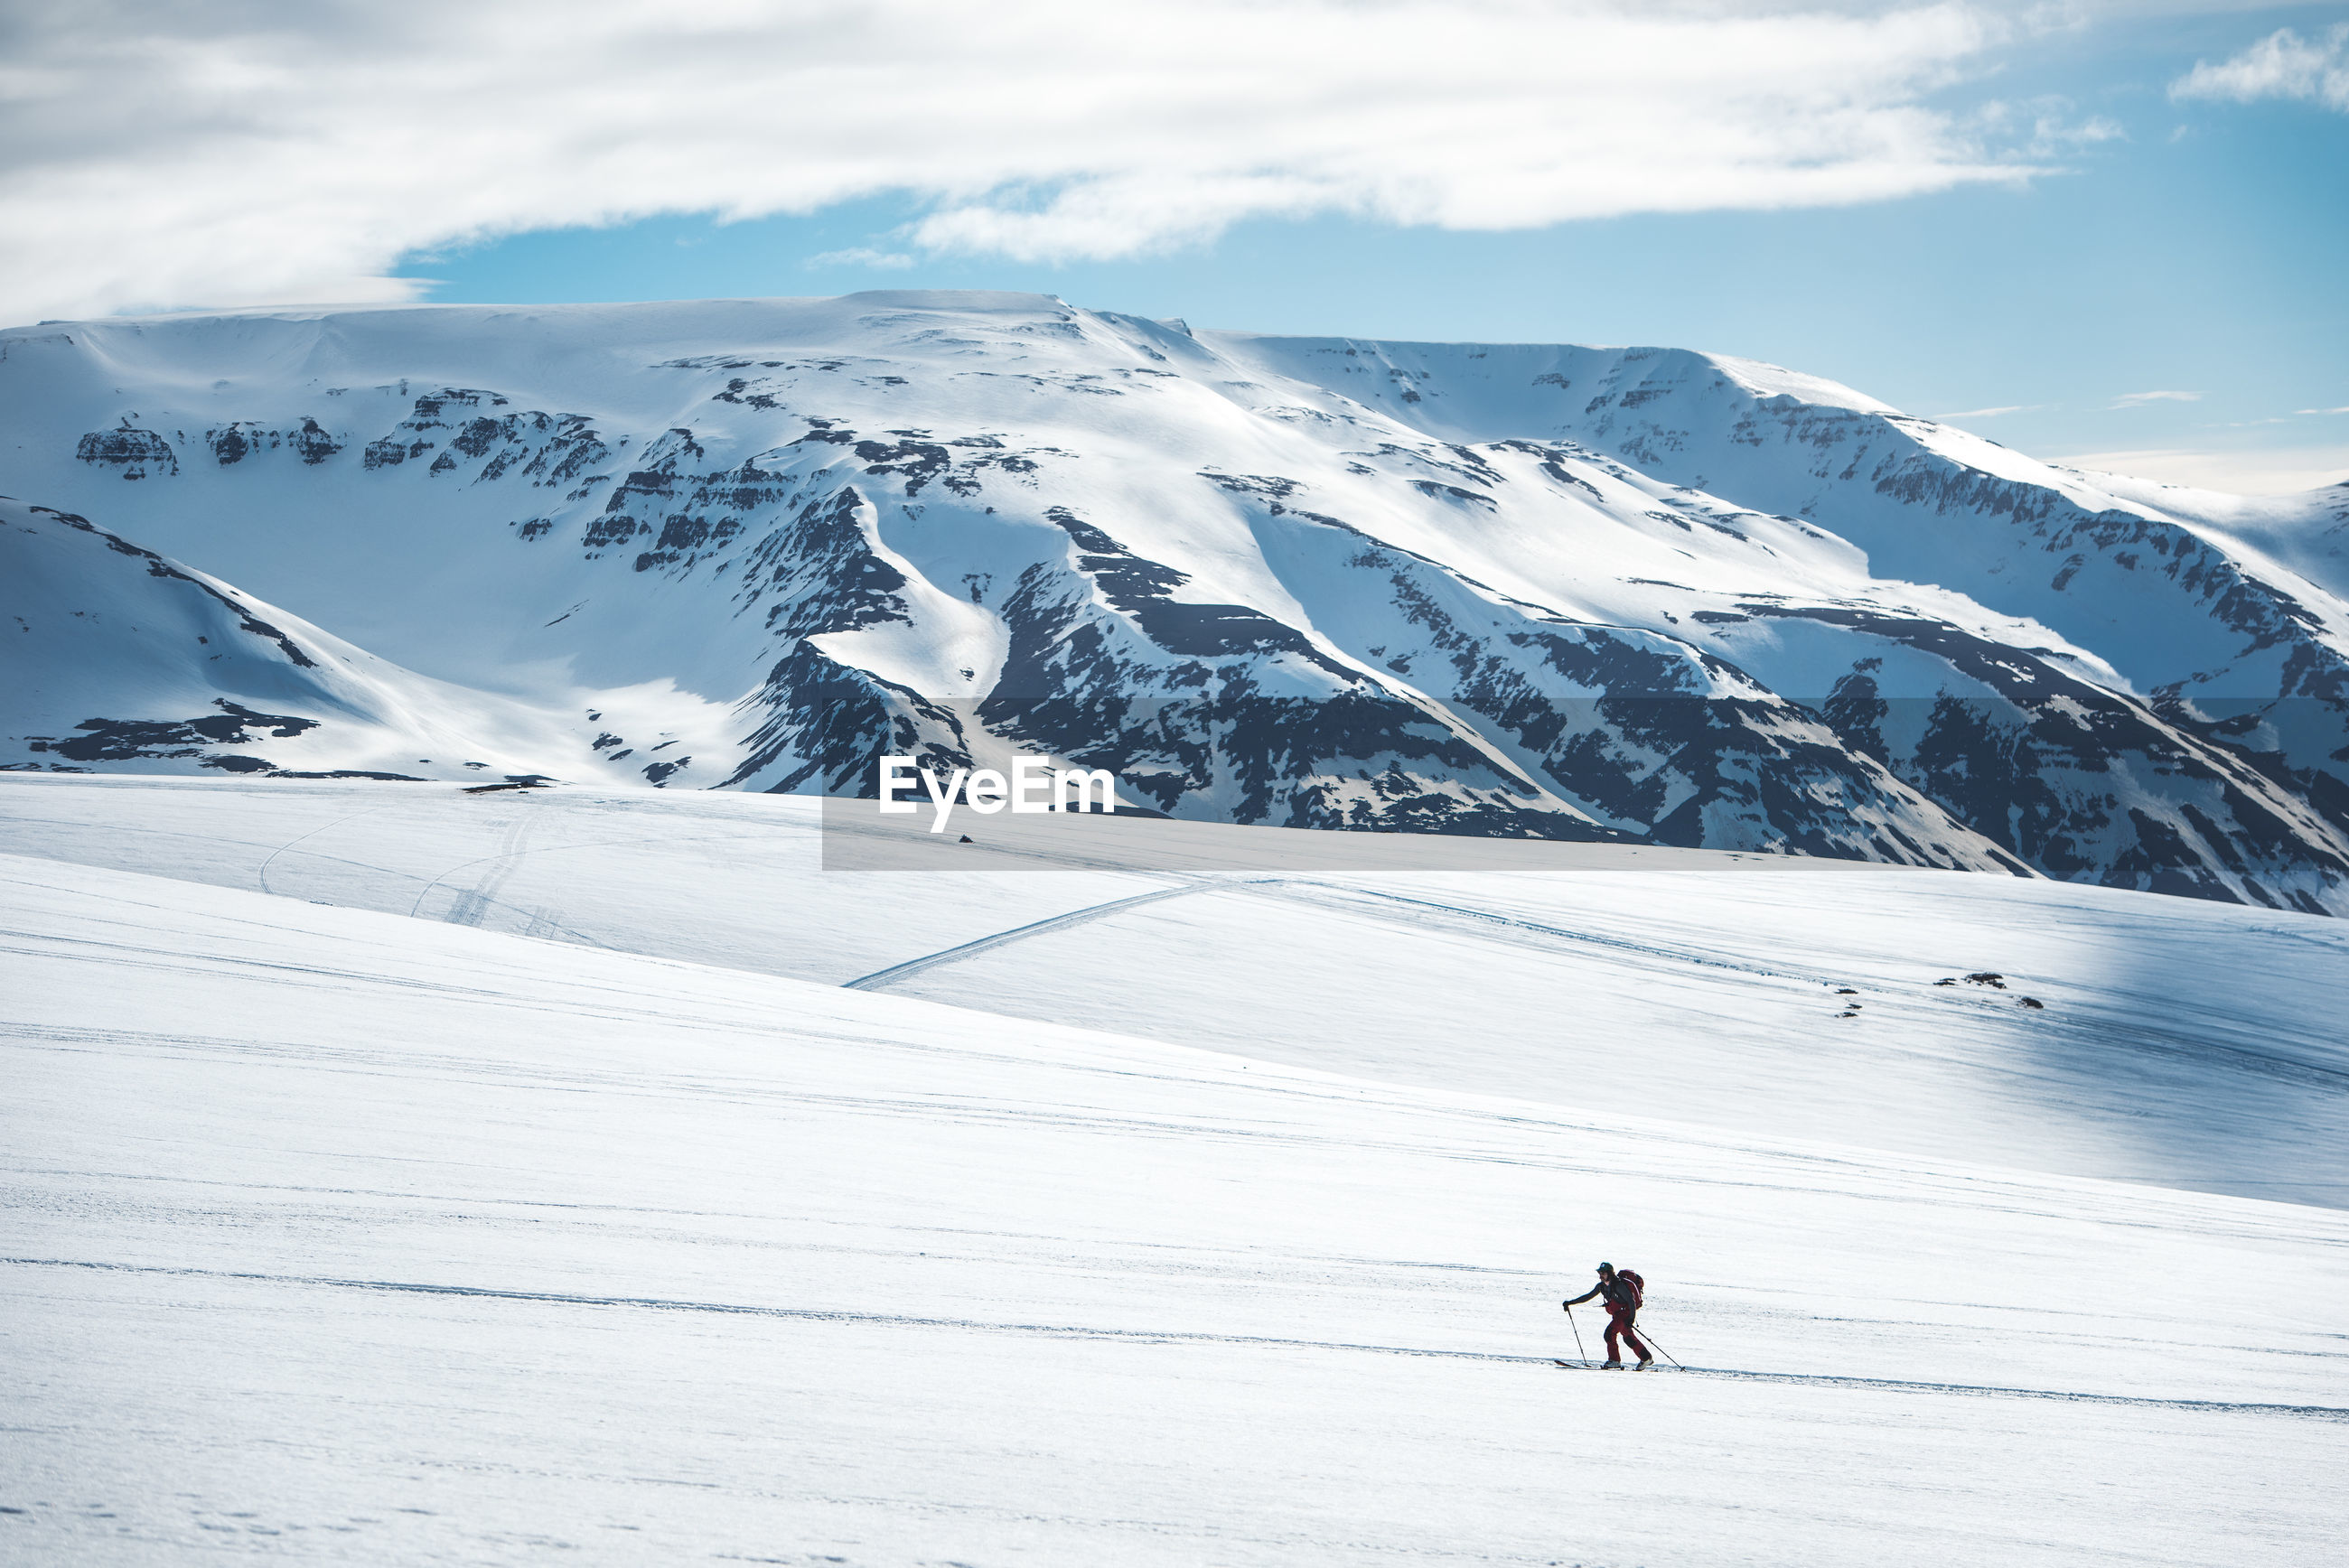 PEOPLE SKIING ON SNOWCAPPED MOUNTAINS AGAINST SKY